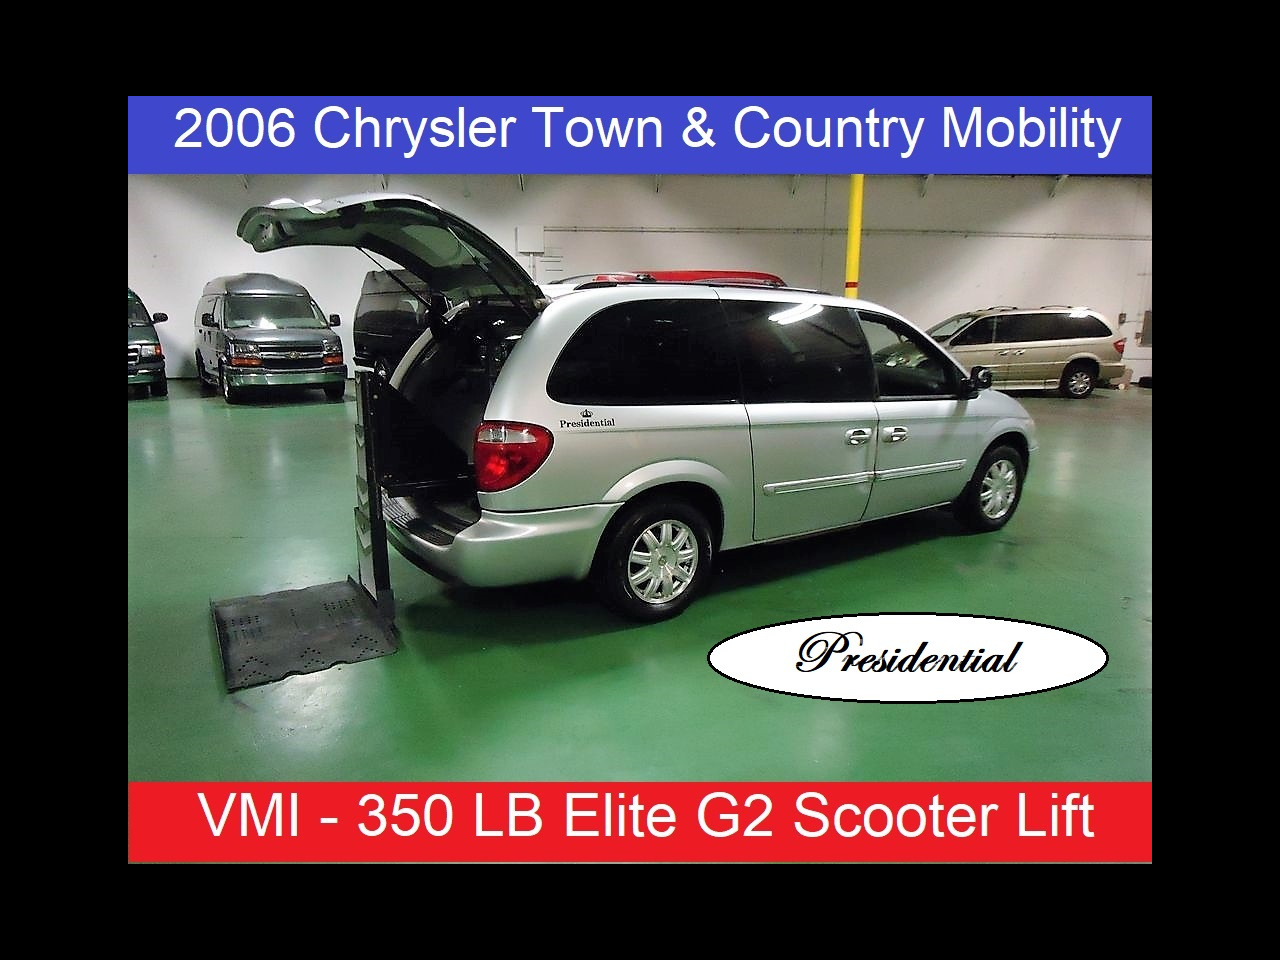 2006 Chrysler Town & Country Presidential Mobility Wheelchair Scooter Rear Lift